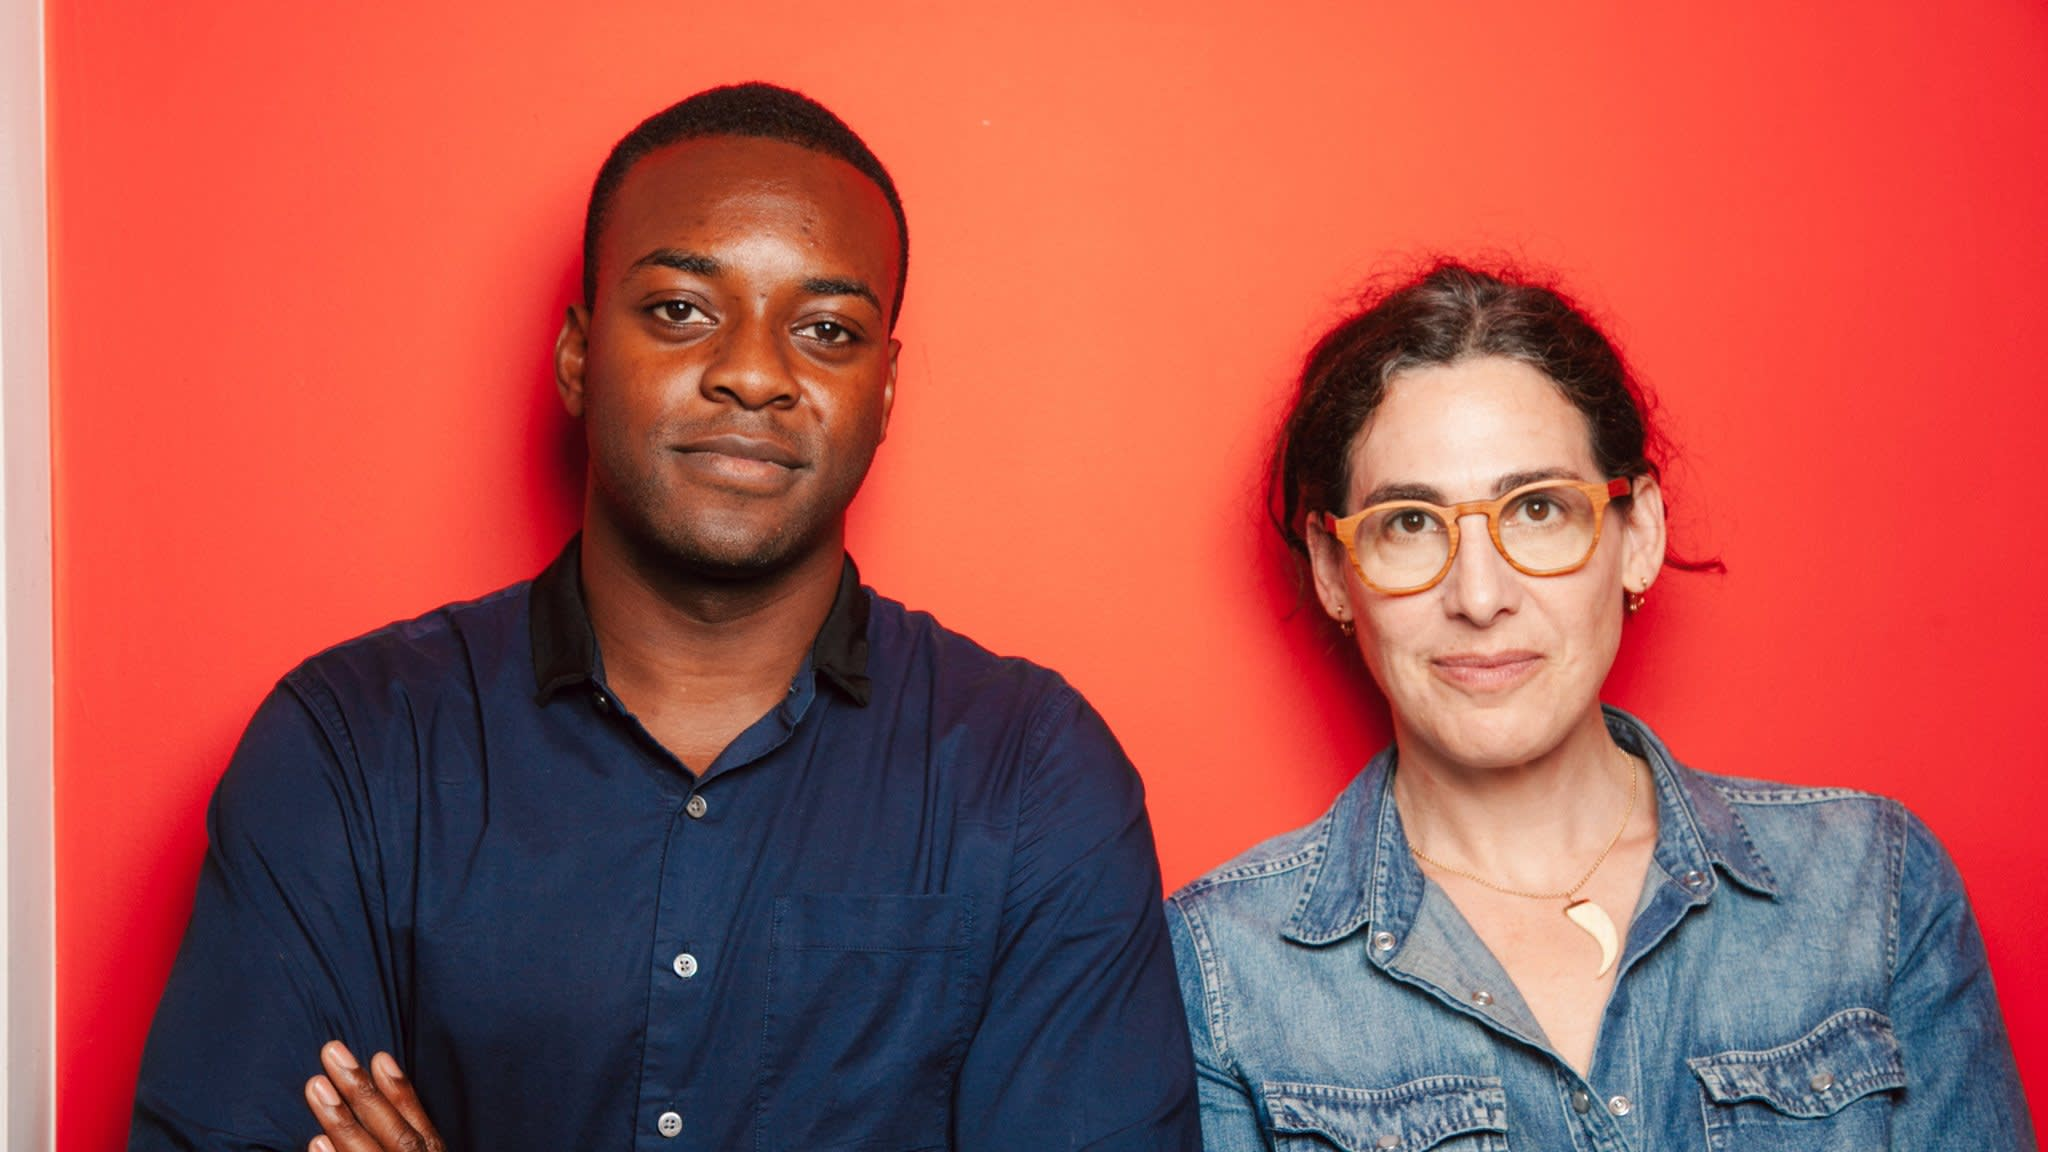 Serial podcast returns with a stinging portrait of a divided society | Financial Times